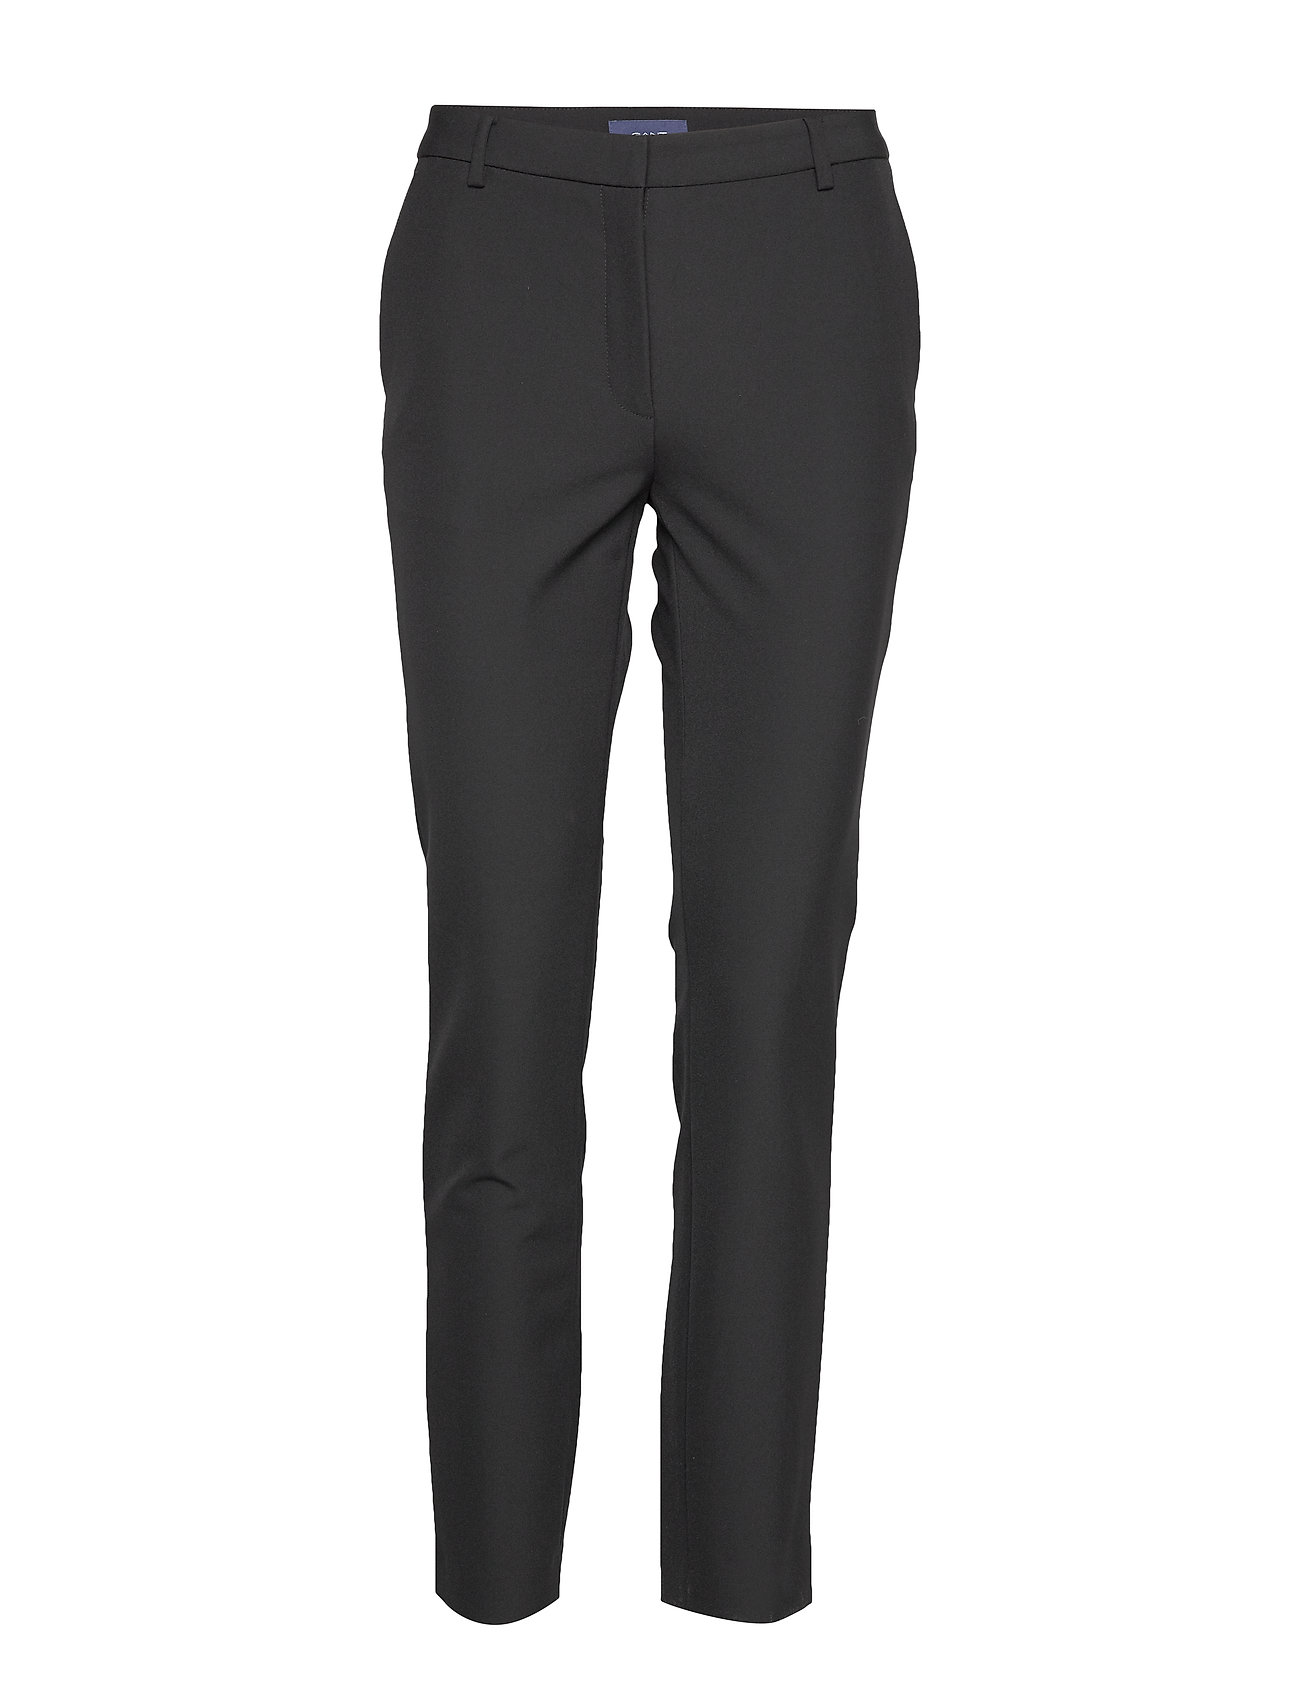 GANT D1. STRETCH TAPERED PANT - BLACK